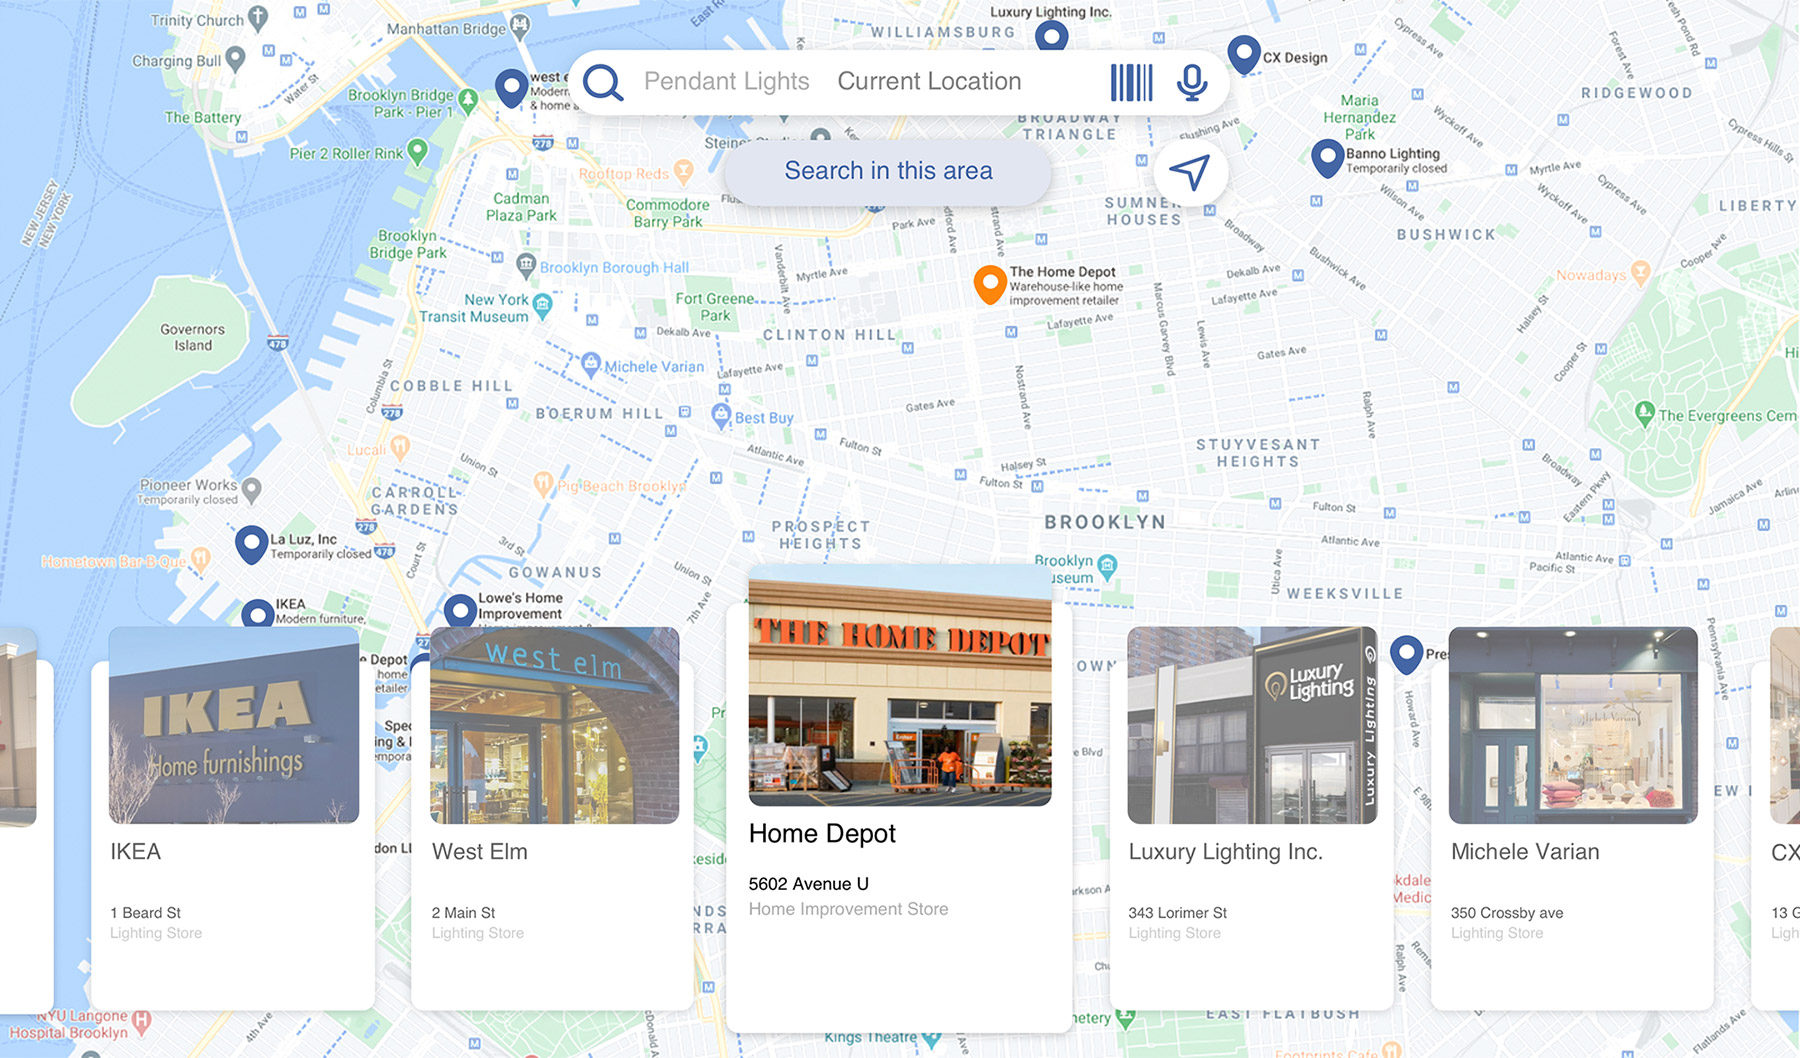 Design for the global search experience that allows users to search for any purchasable item within a given area from the database.